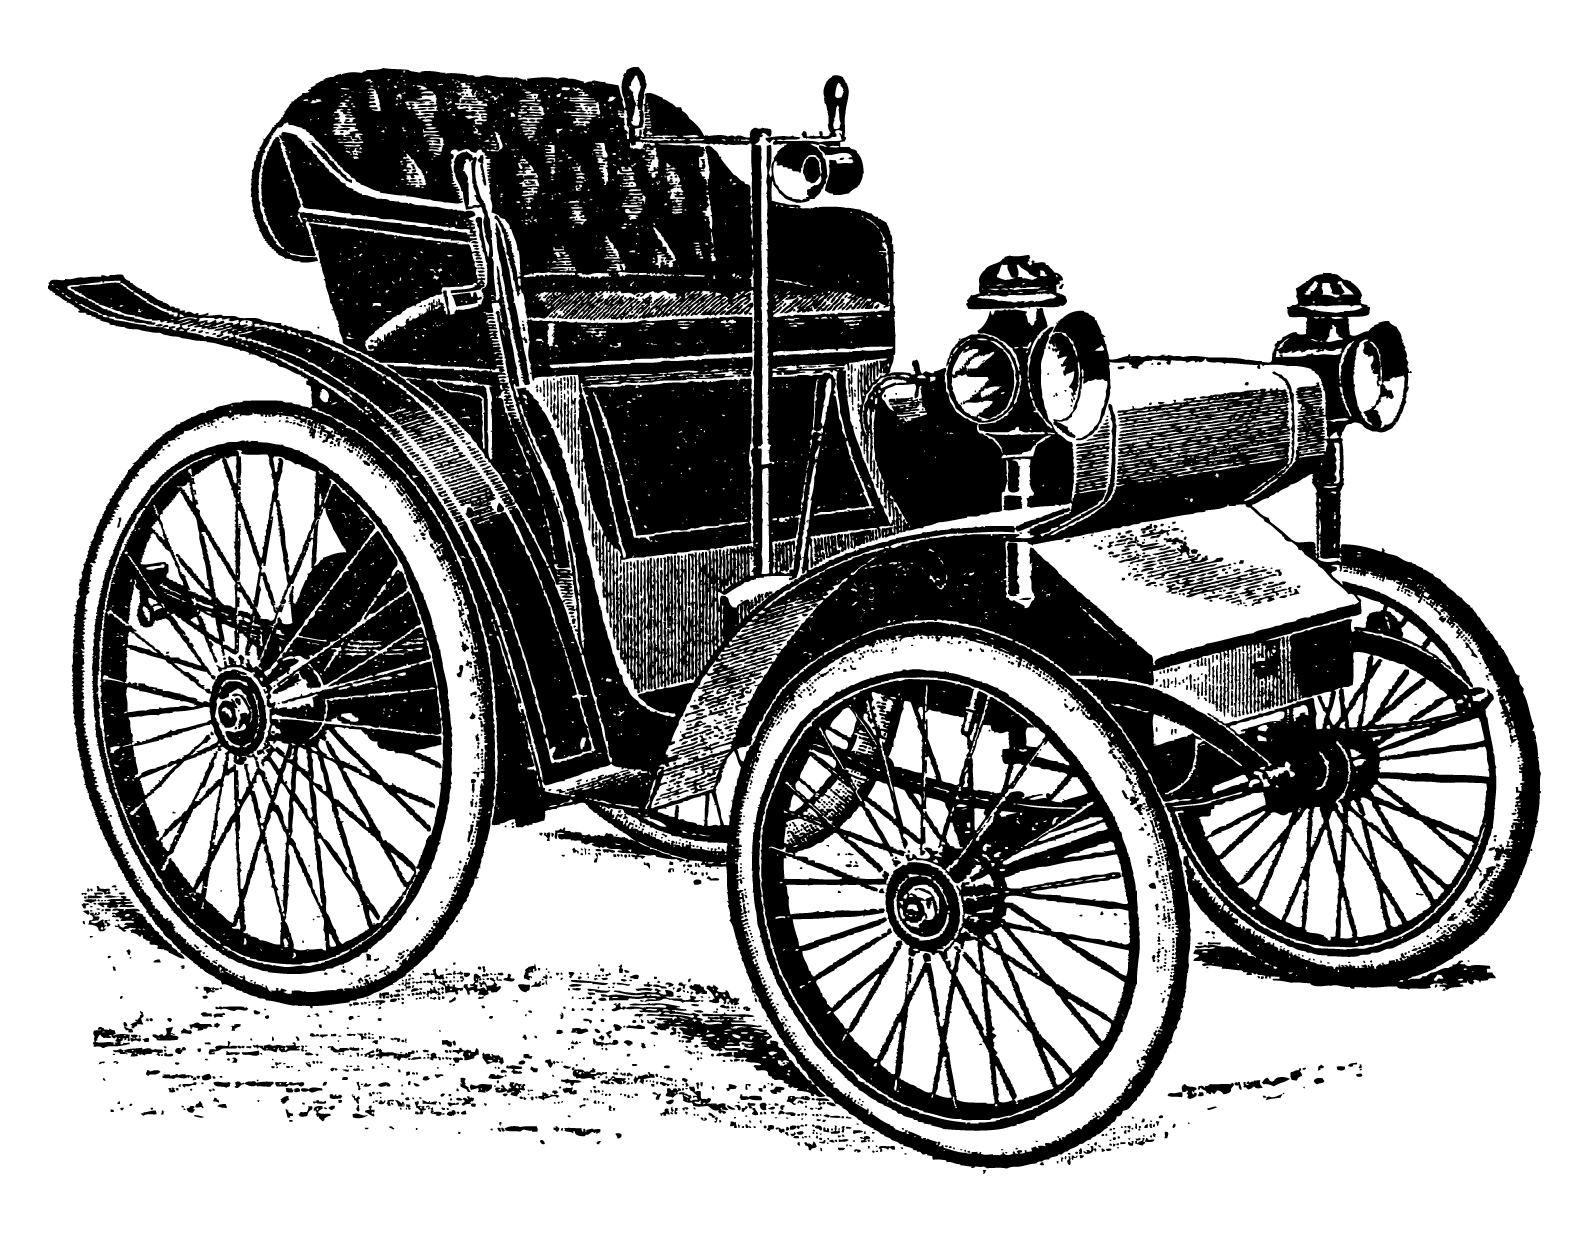 Classic car and new car picture clipart image black and white library Free clipart of the first car - ClipartFox image black and white library